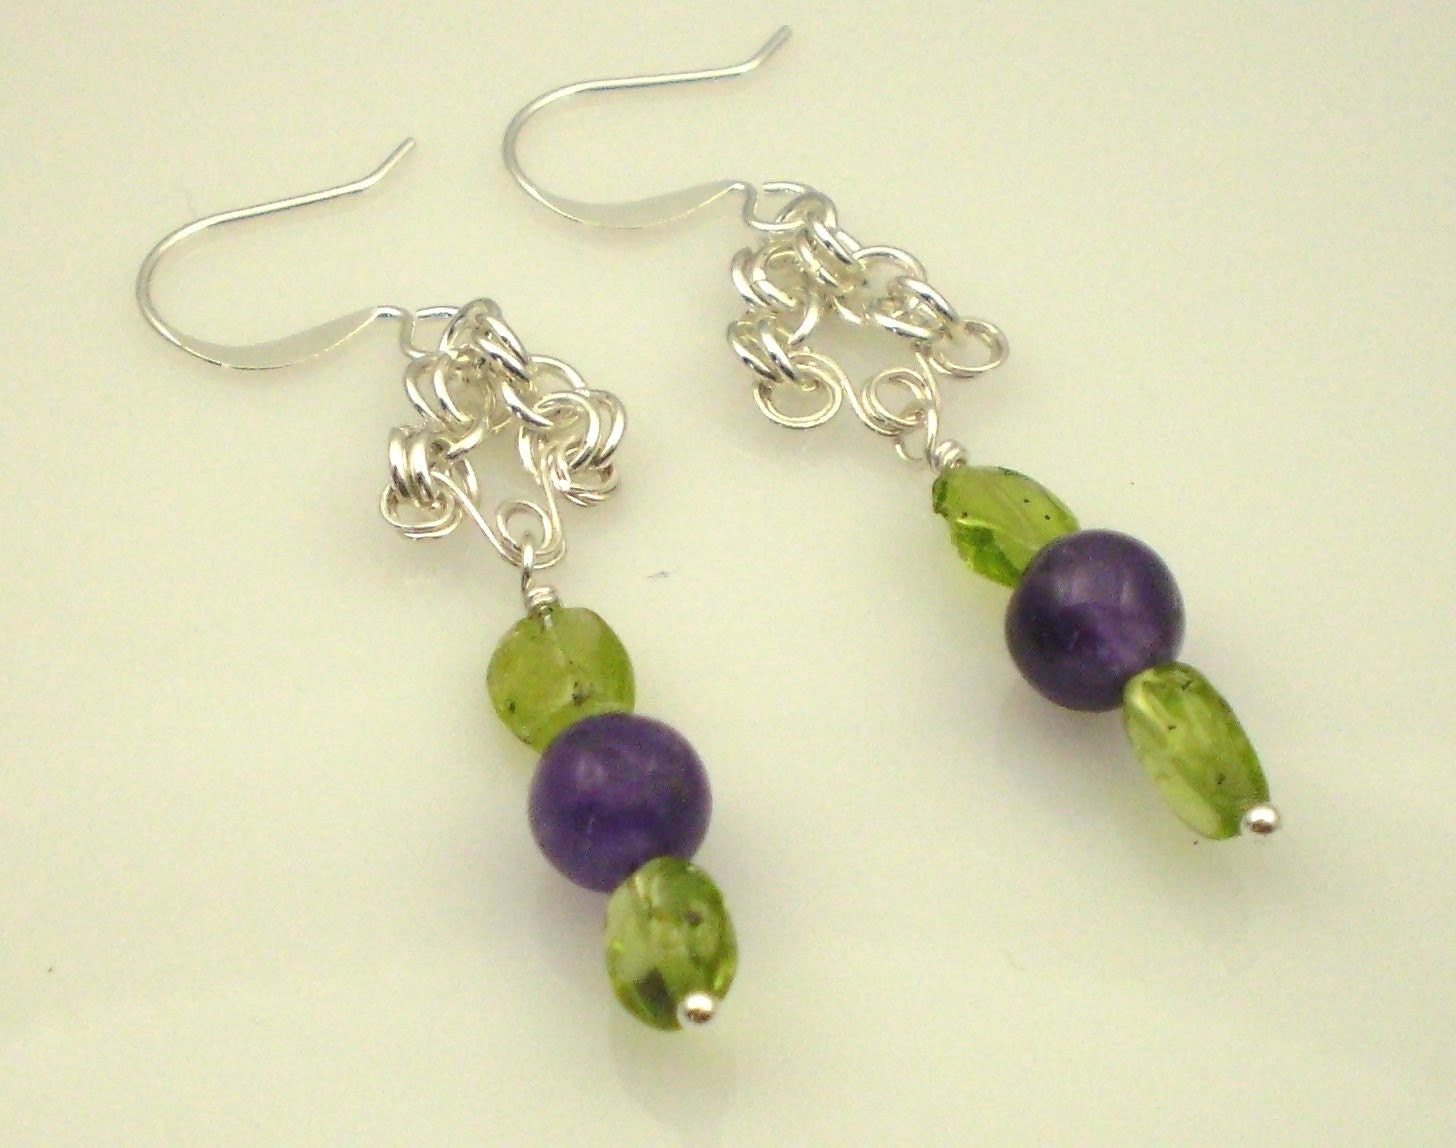 Fields of Violets Earrings - Amethyst and Peridot with Sterling Silver Wire and Chain Maille